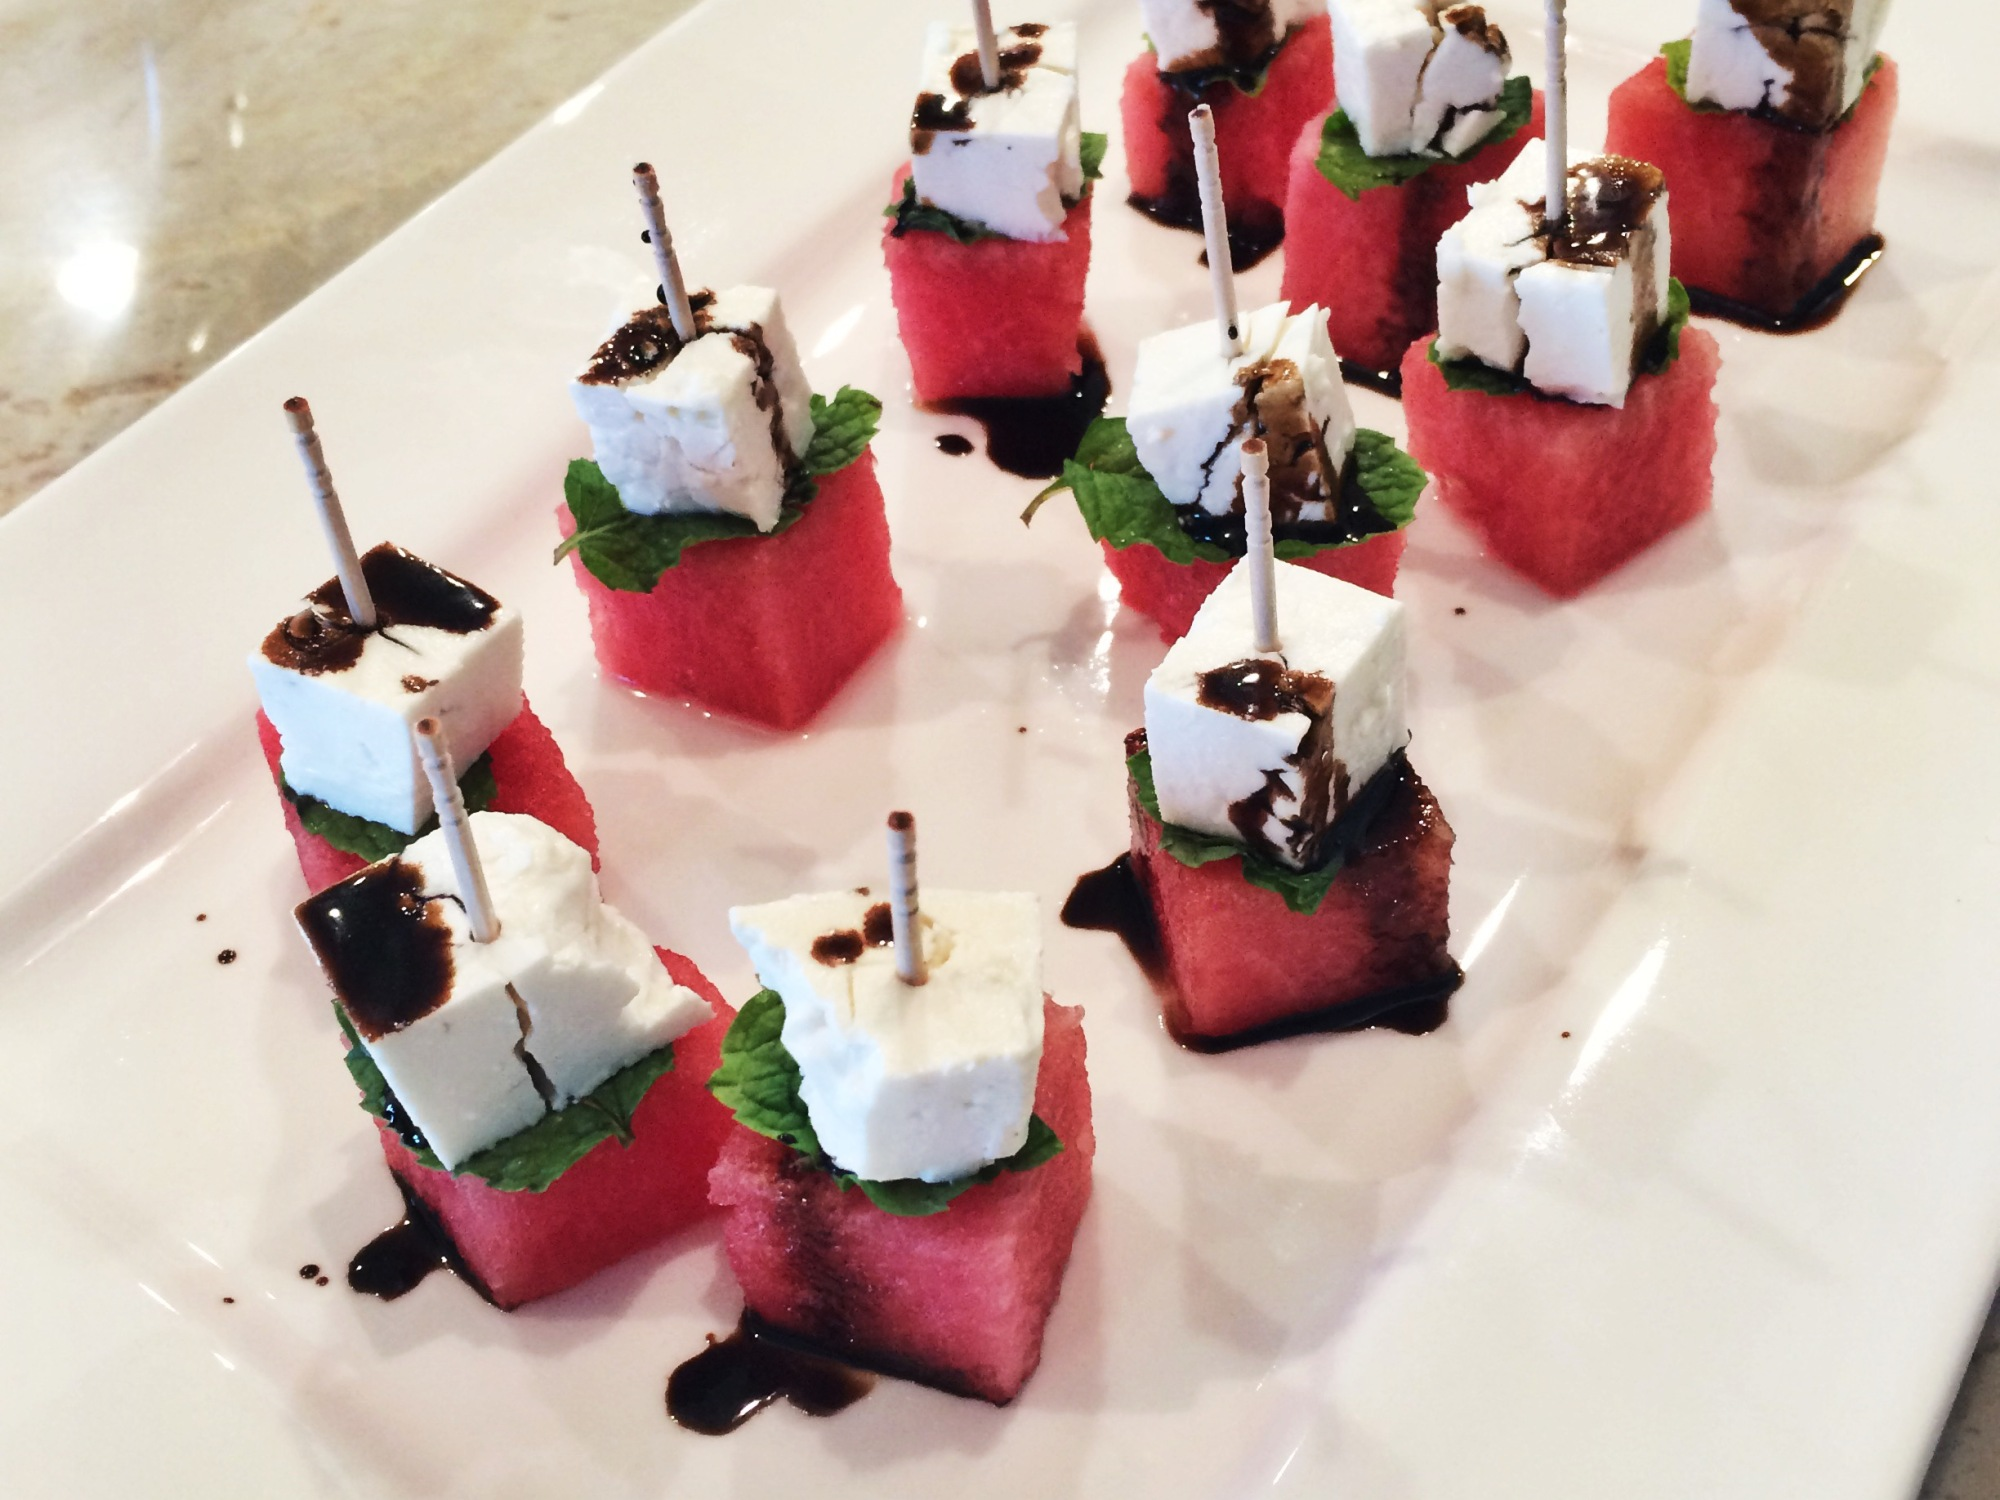 Watermelon, Feta, Mint Bites with Balsamic Drizzle